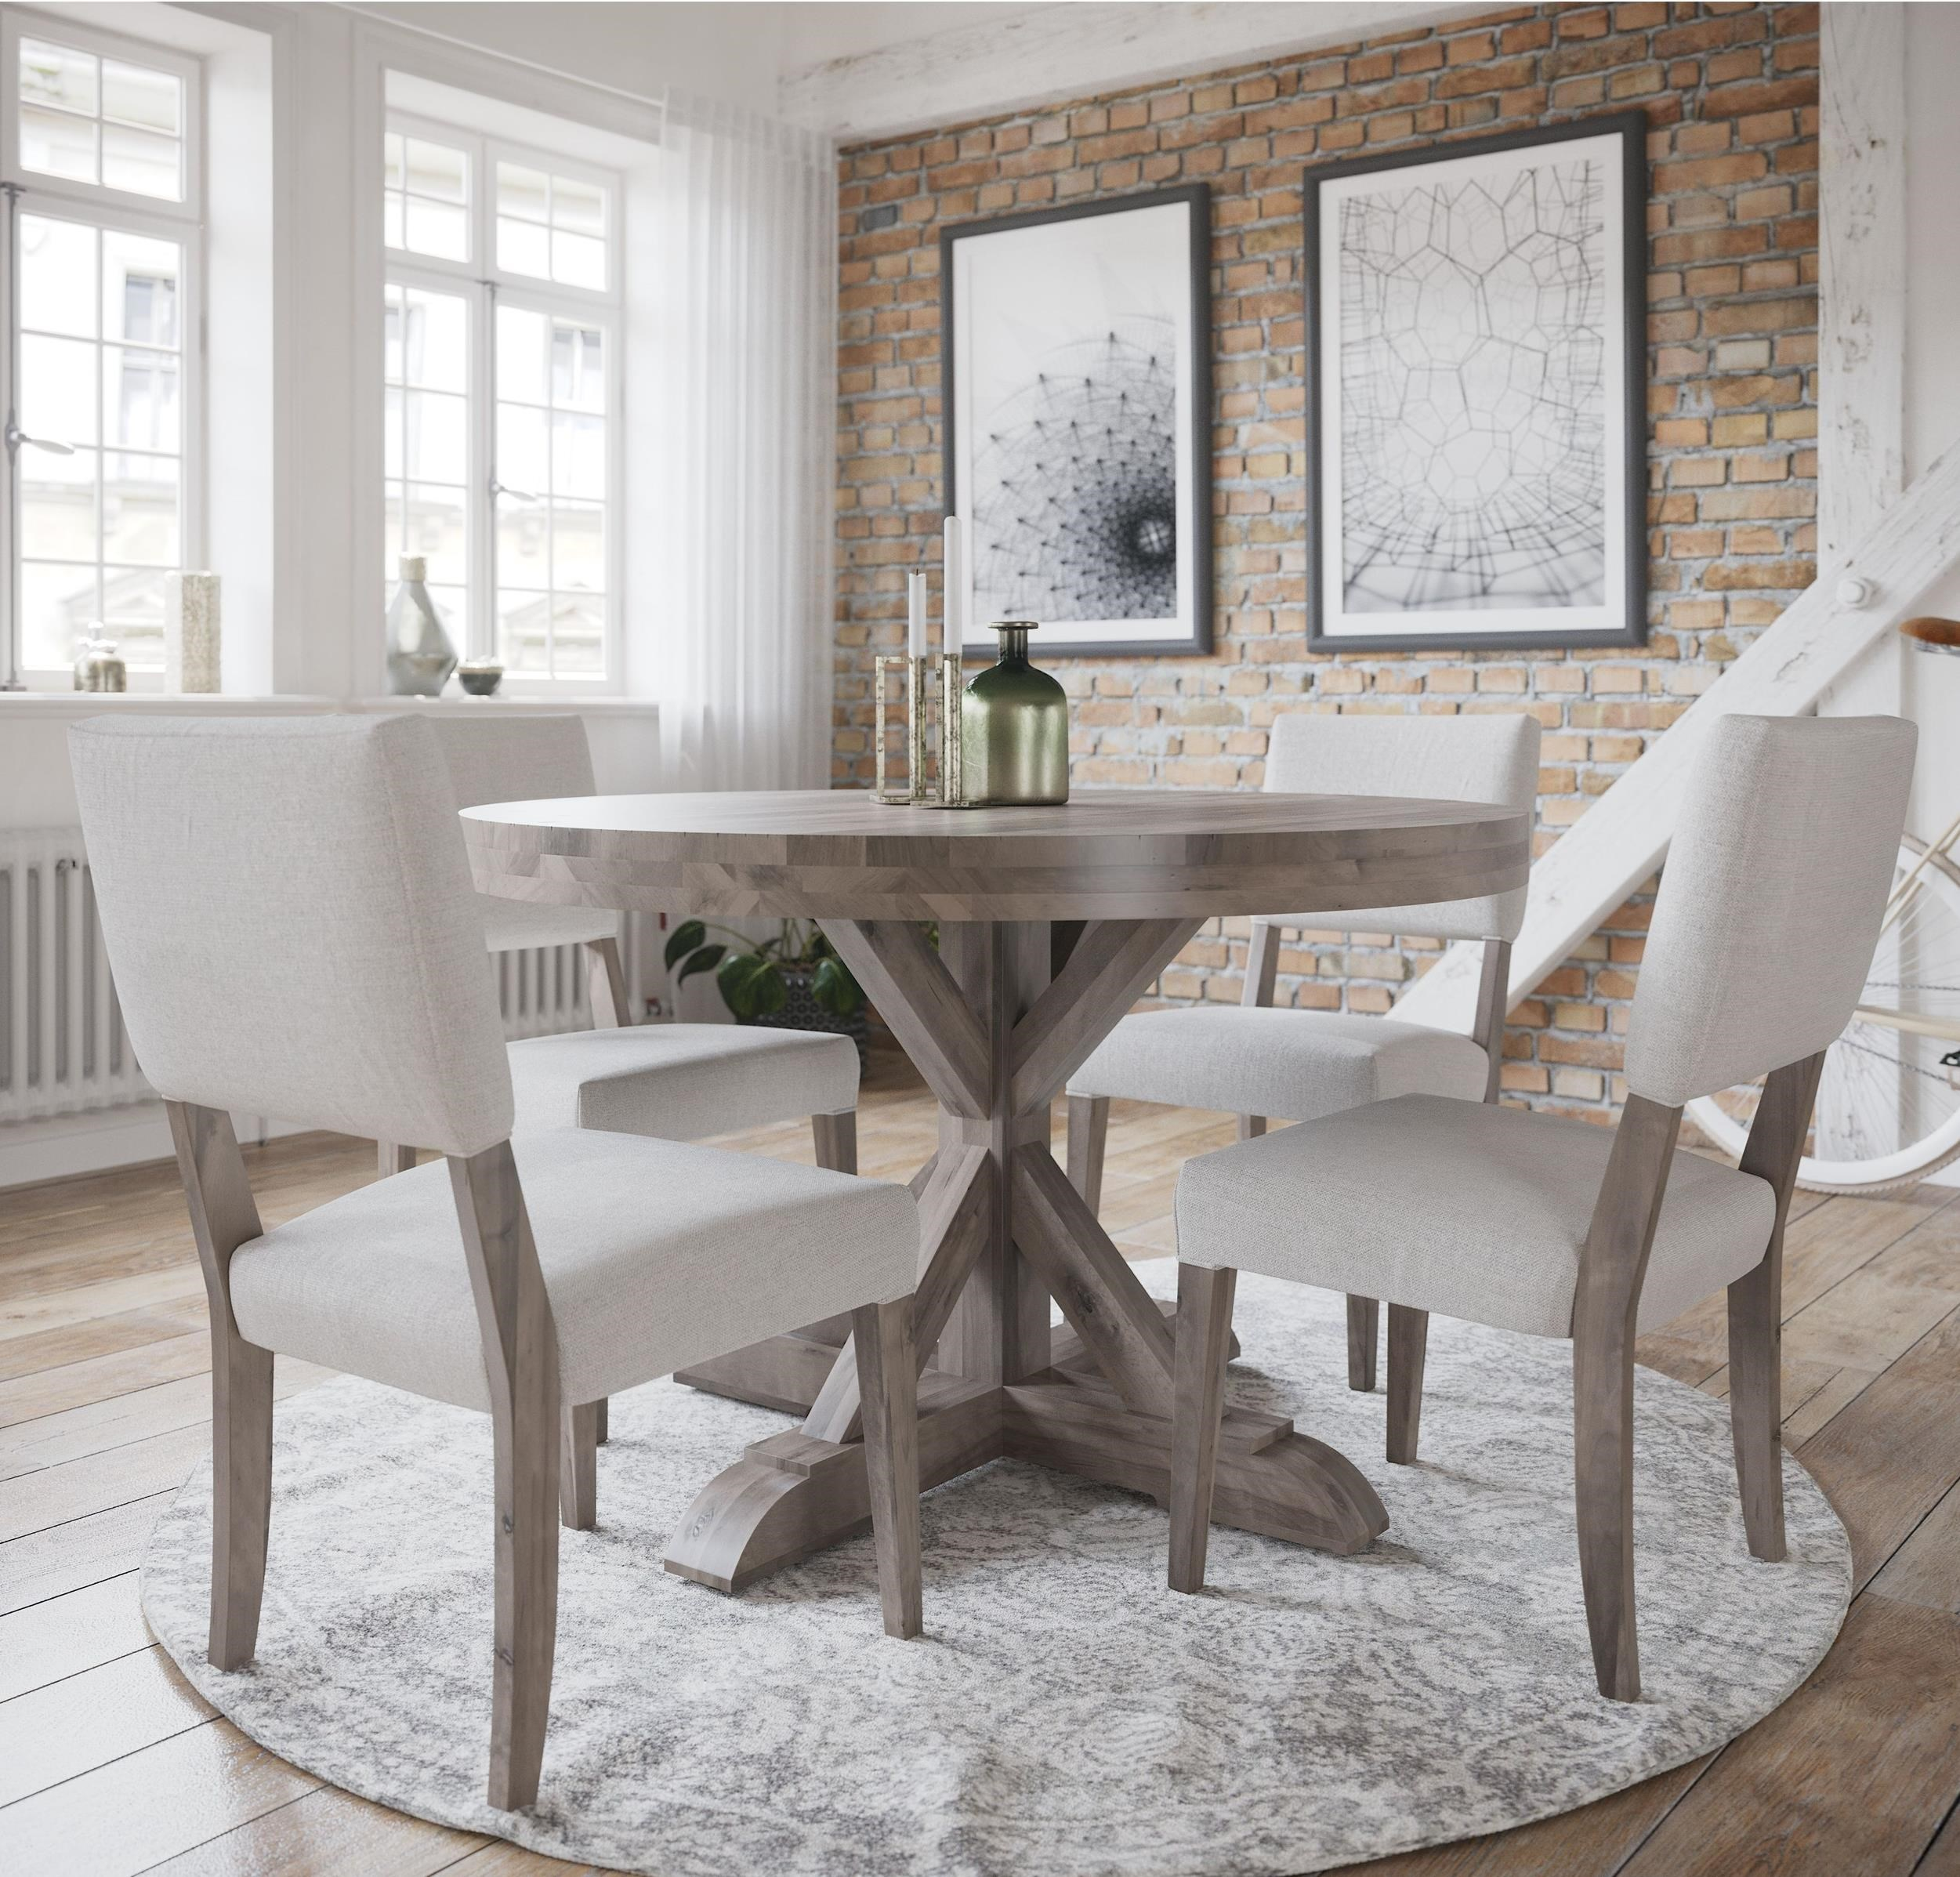 Loft - Custom Dining Customizable Round Table Set by Canadel at Dinette Depot